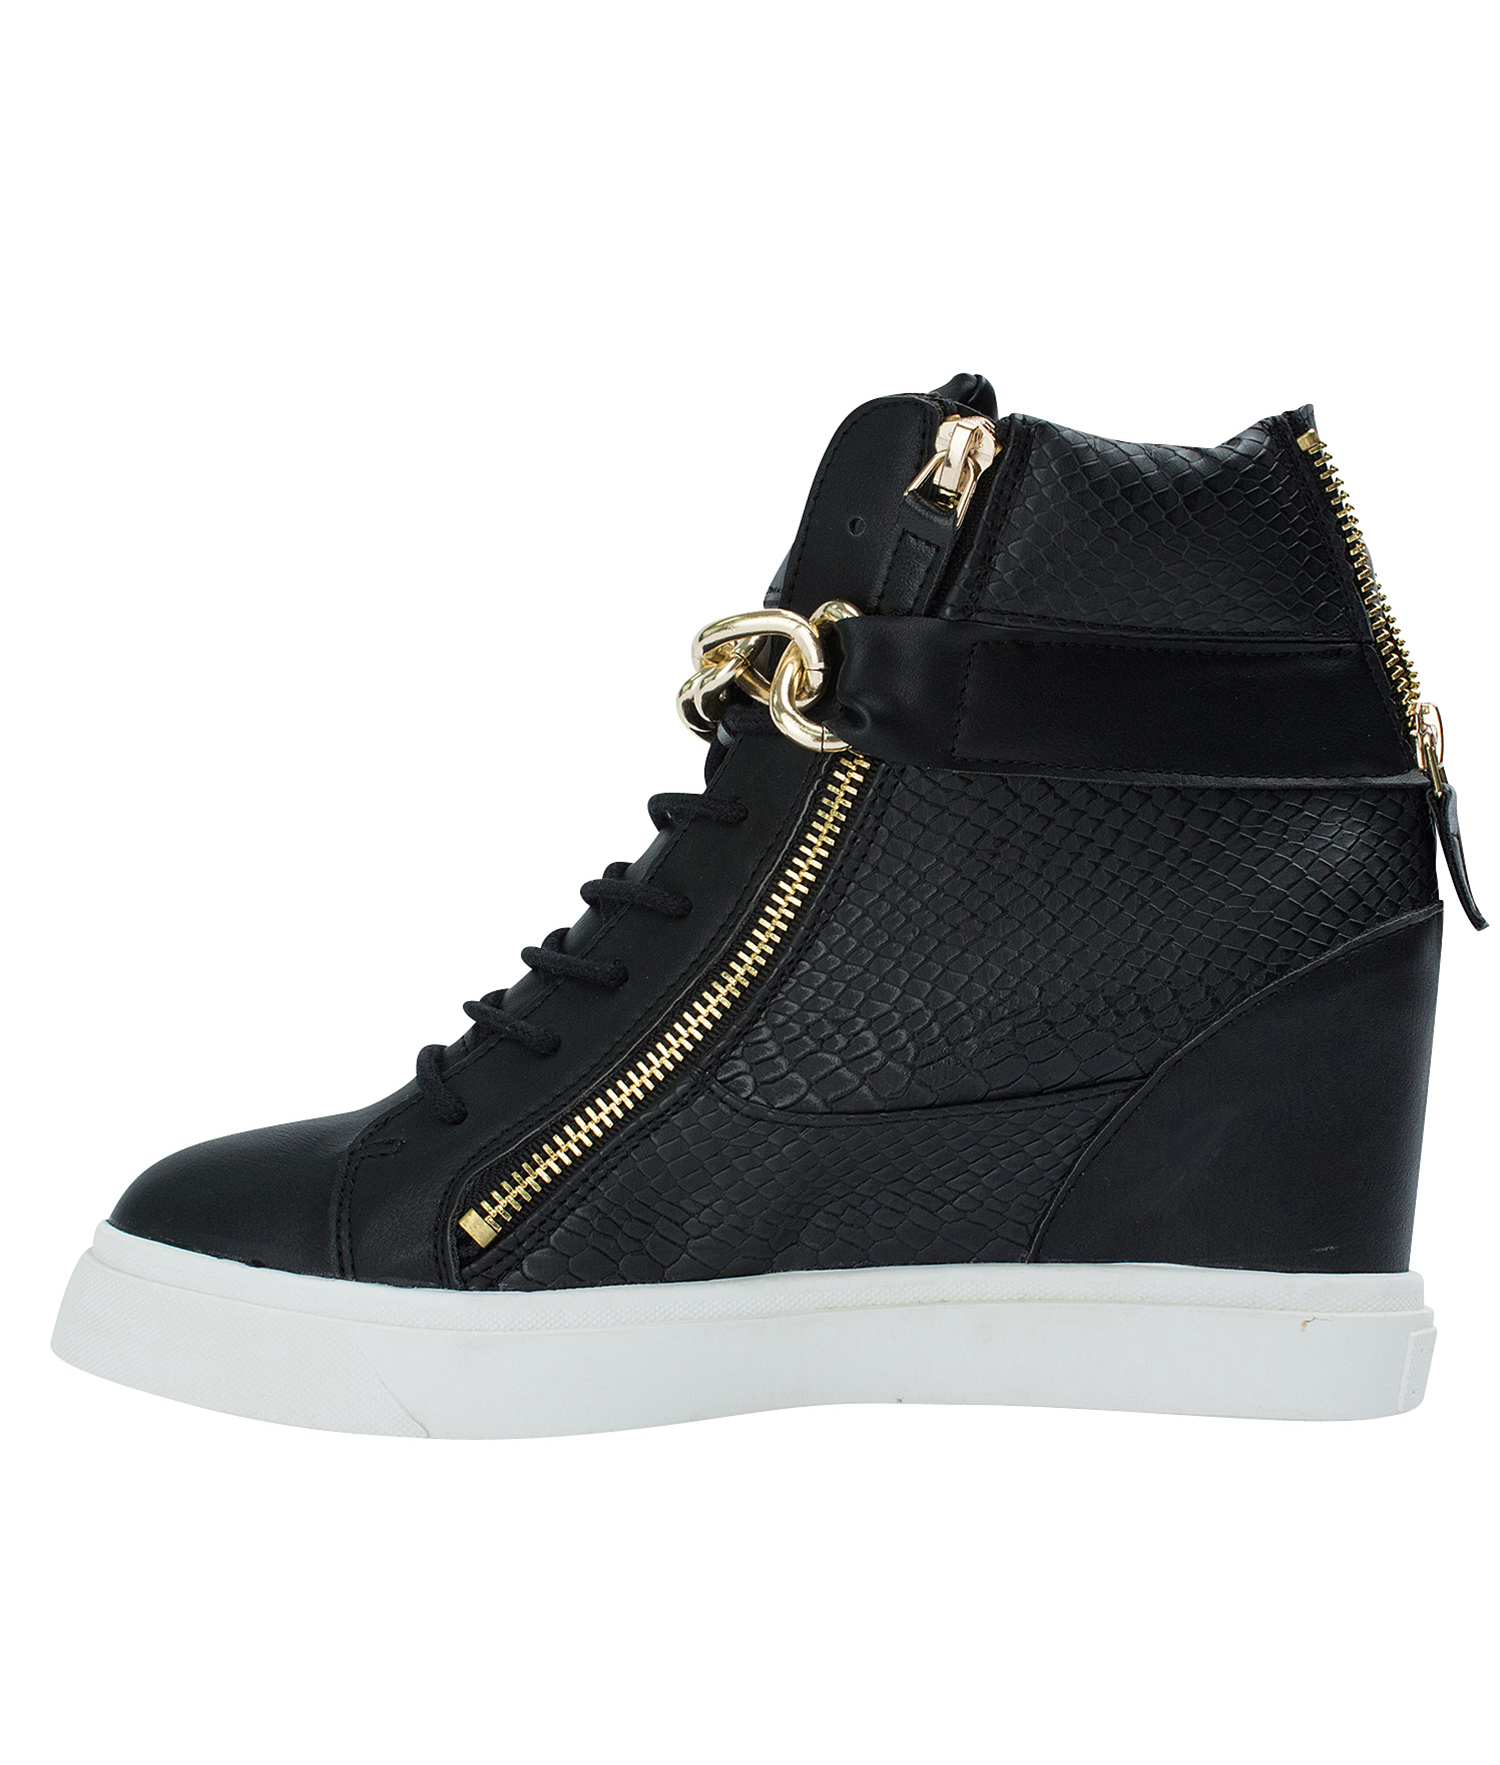 a430726d8ab7 AnnaKastle Womens Gold Chain High Top Wedge Sneakers Black